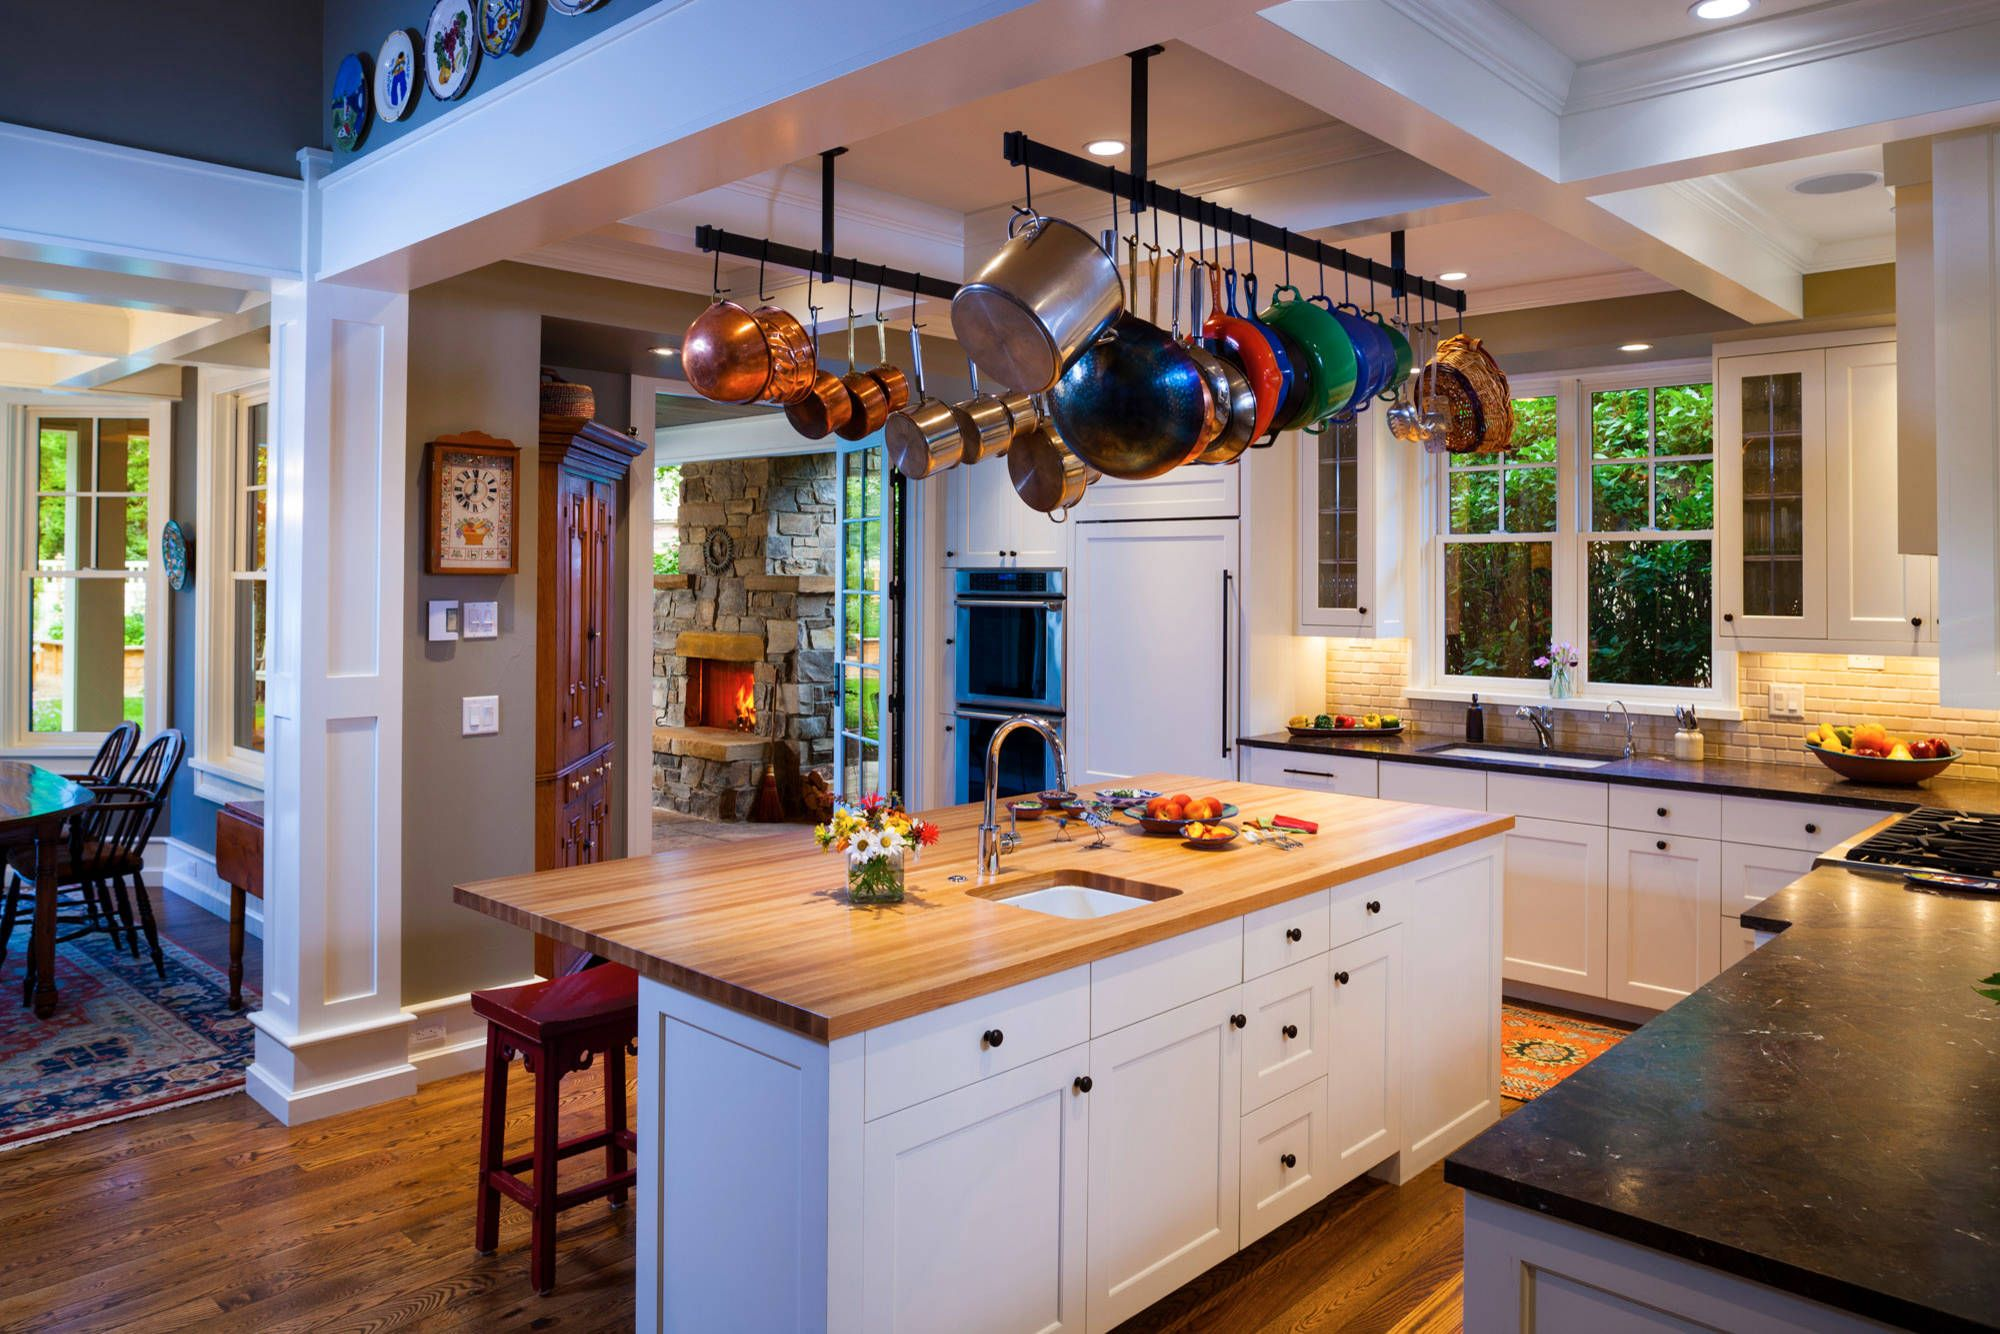 Awesome Kitchen Compositions With Hanging Pot Rack Ideas